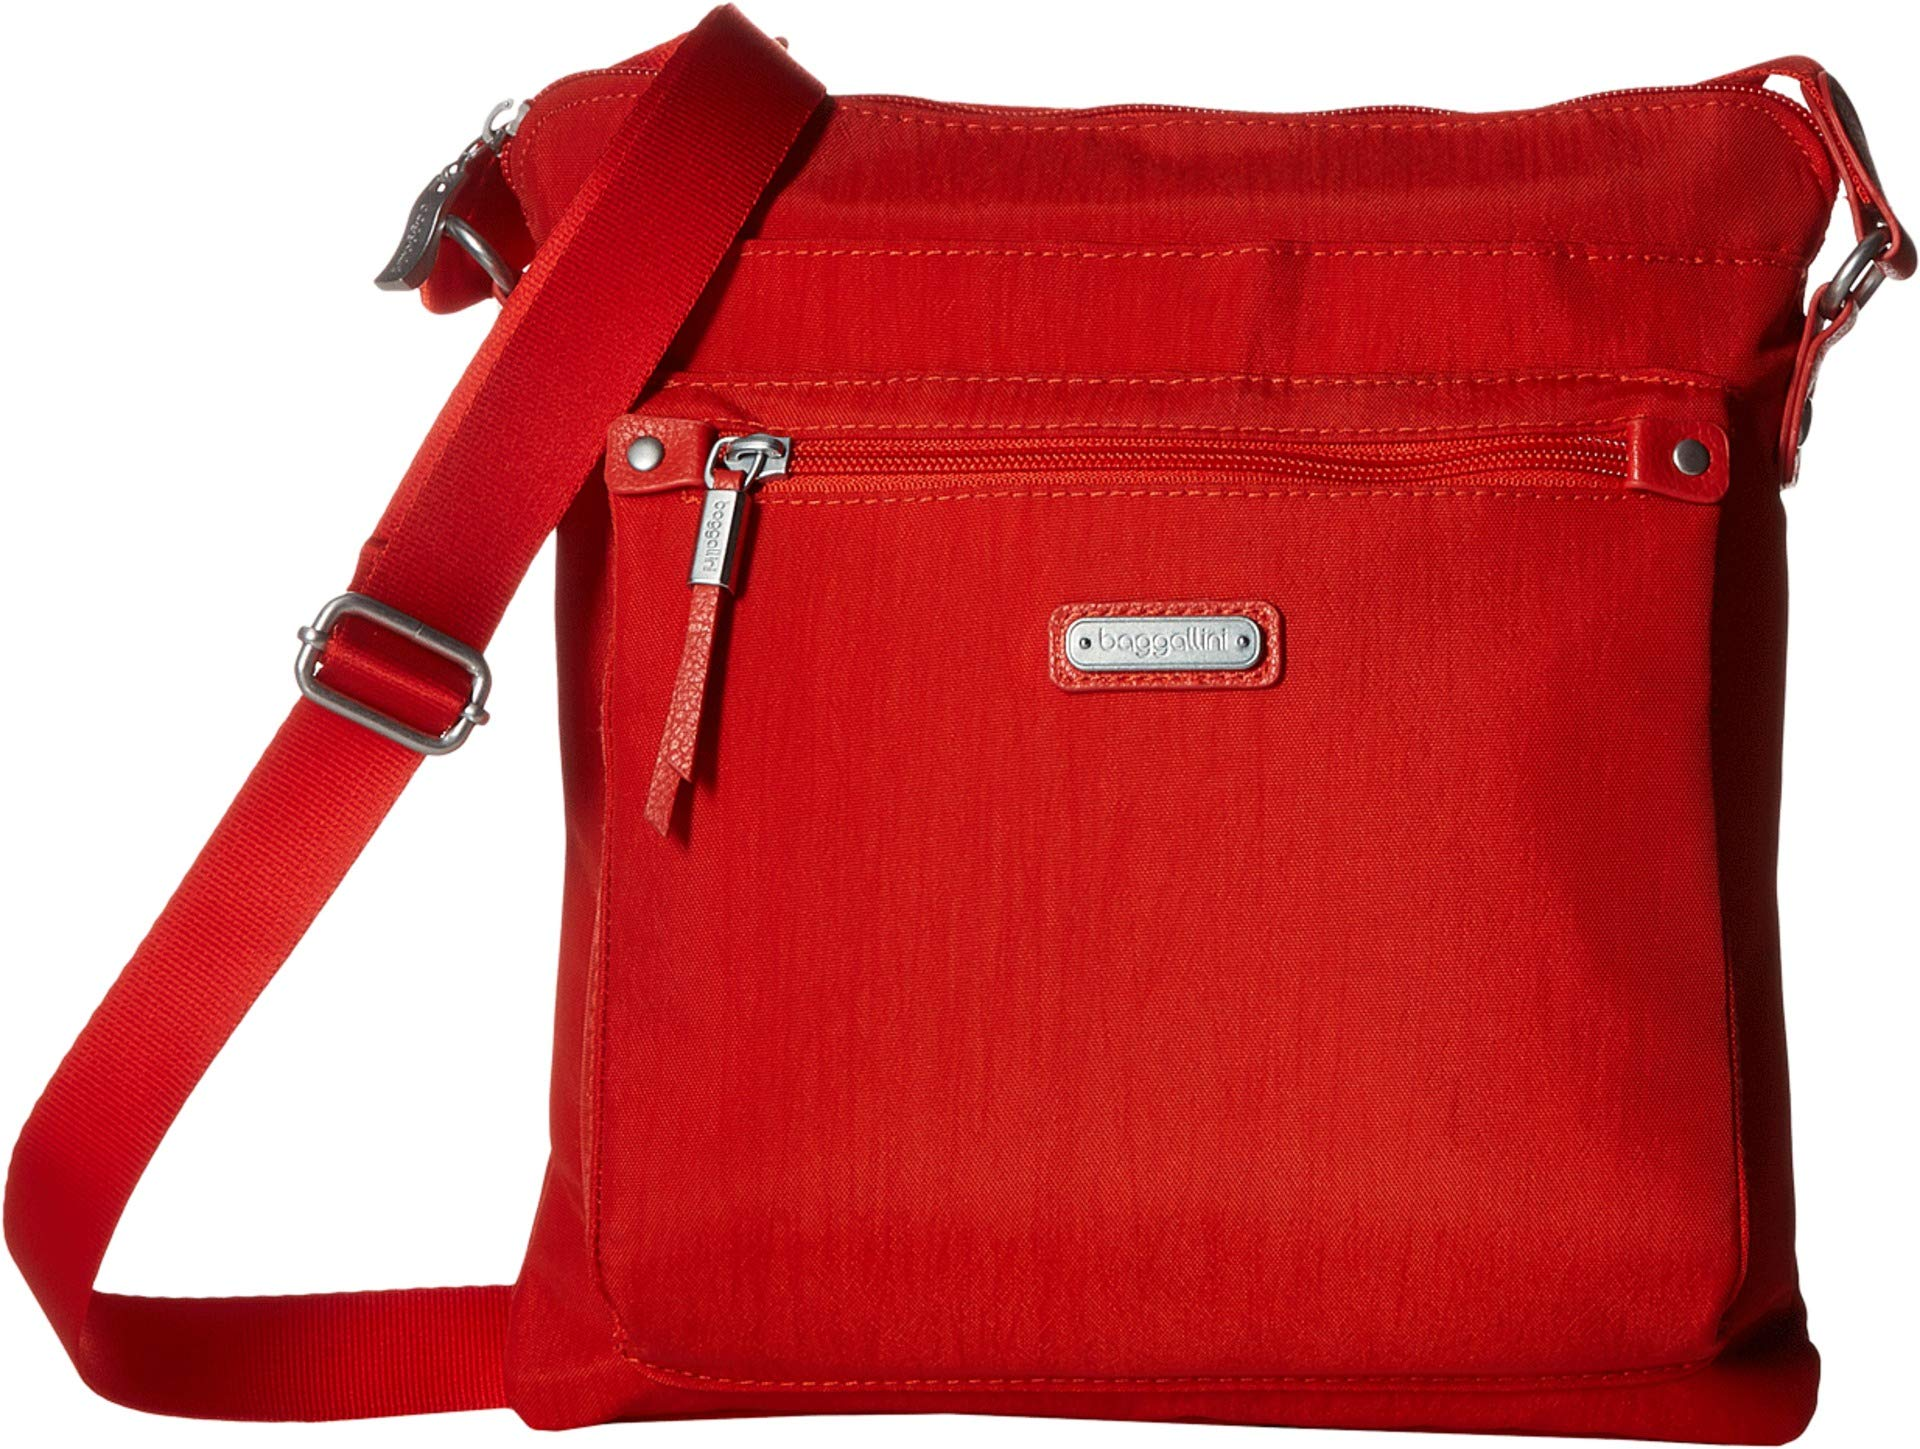 Baggallini Women's New Classic Go Bagg with RFID Phone Wristlet Vibrant Poppy One Size by Baggallini (Image #1)